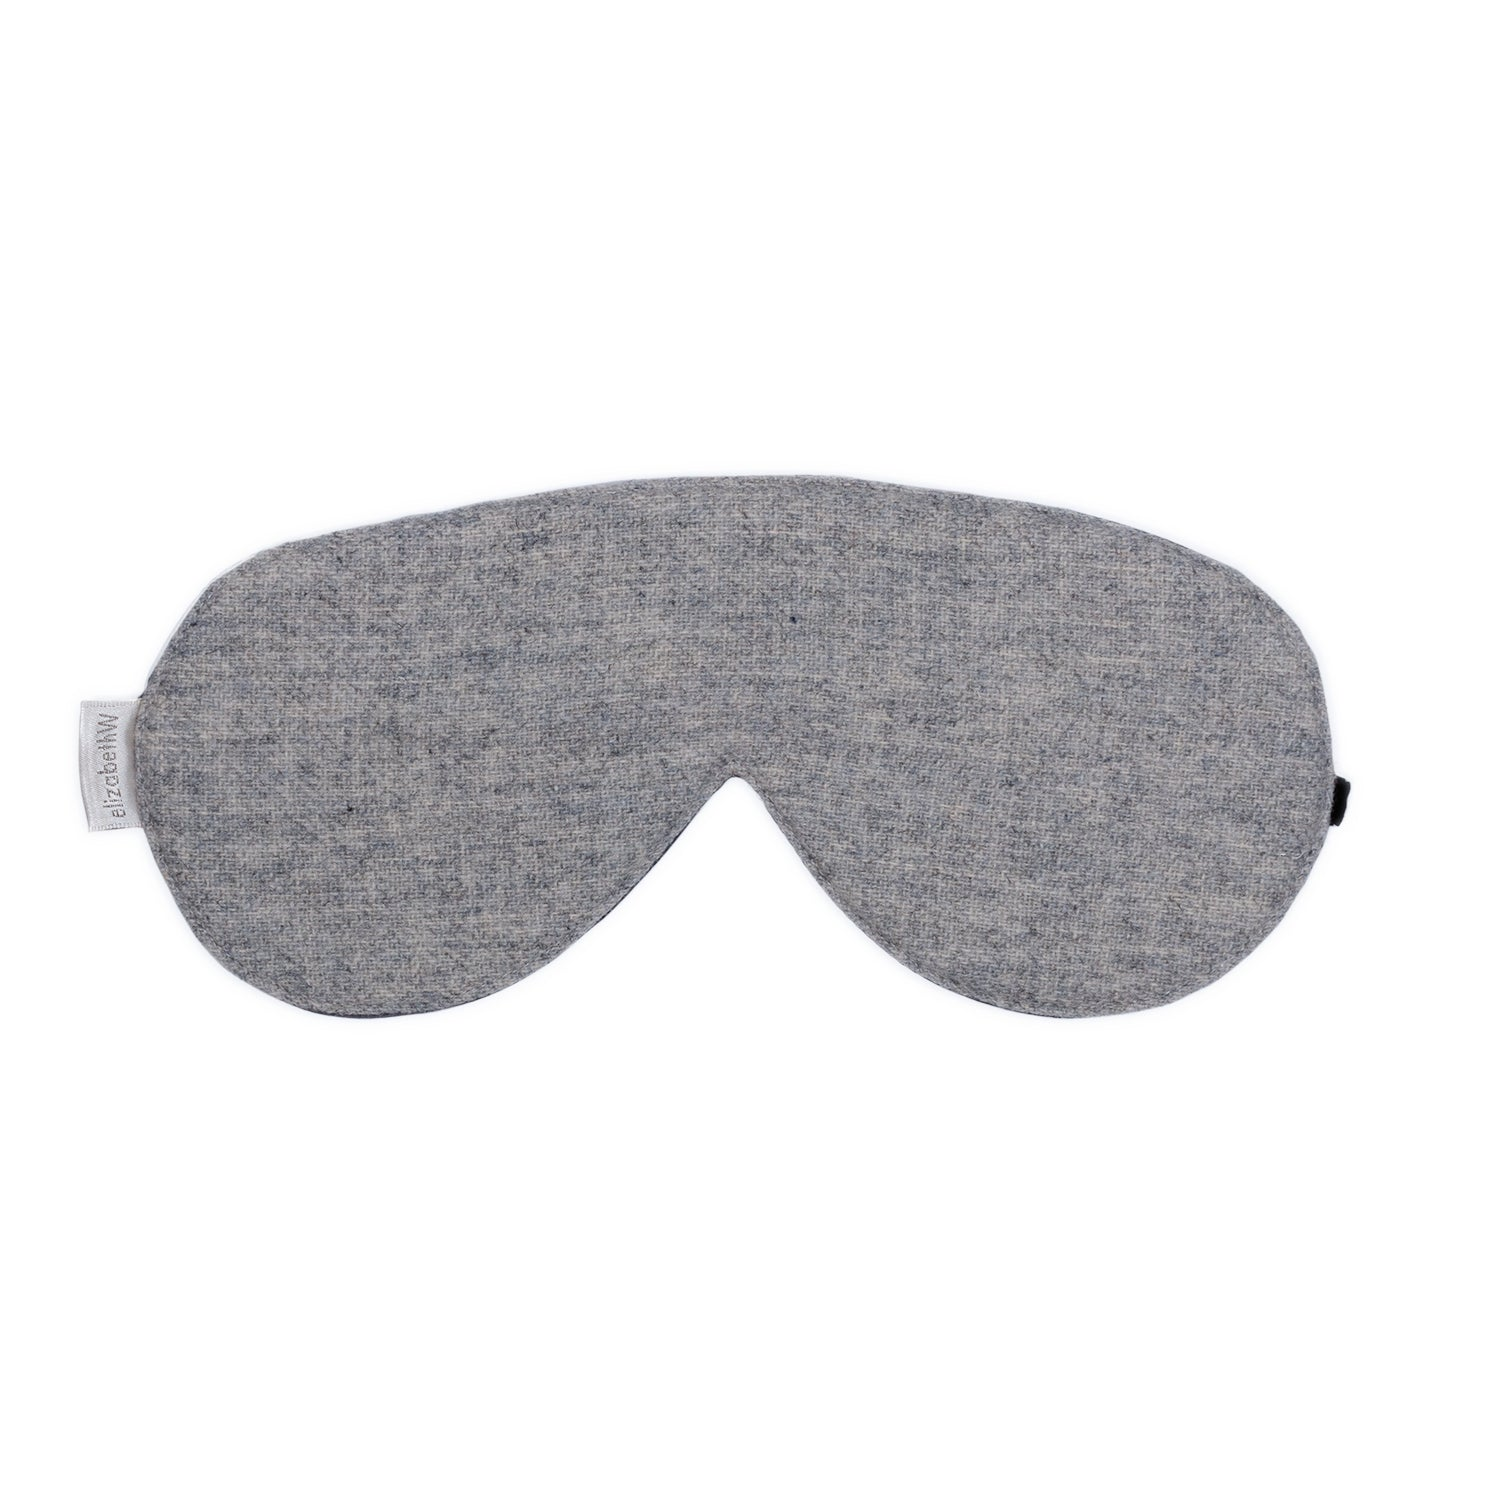 Wool - Heather Gray Sleep Mask